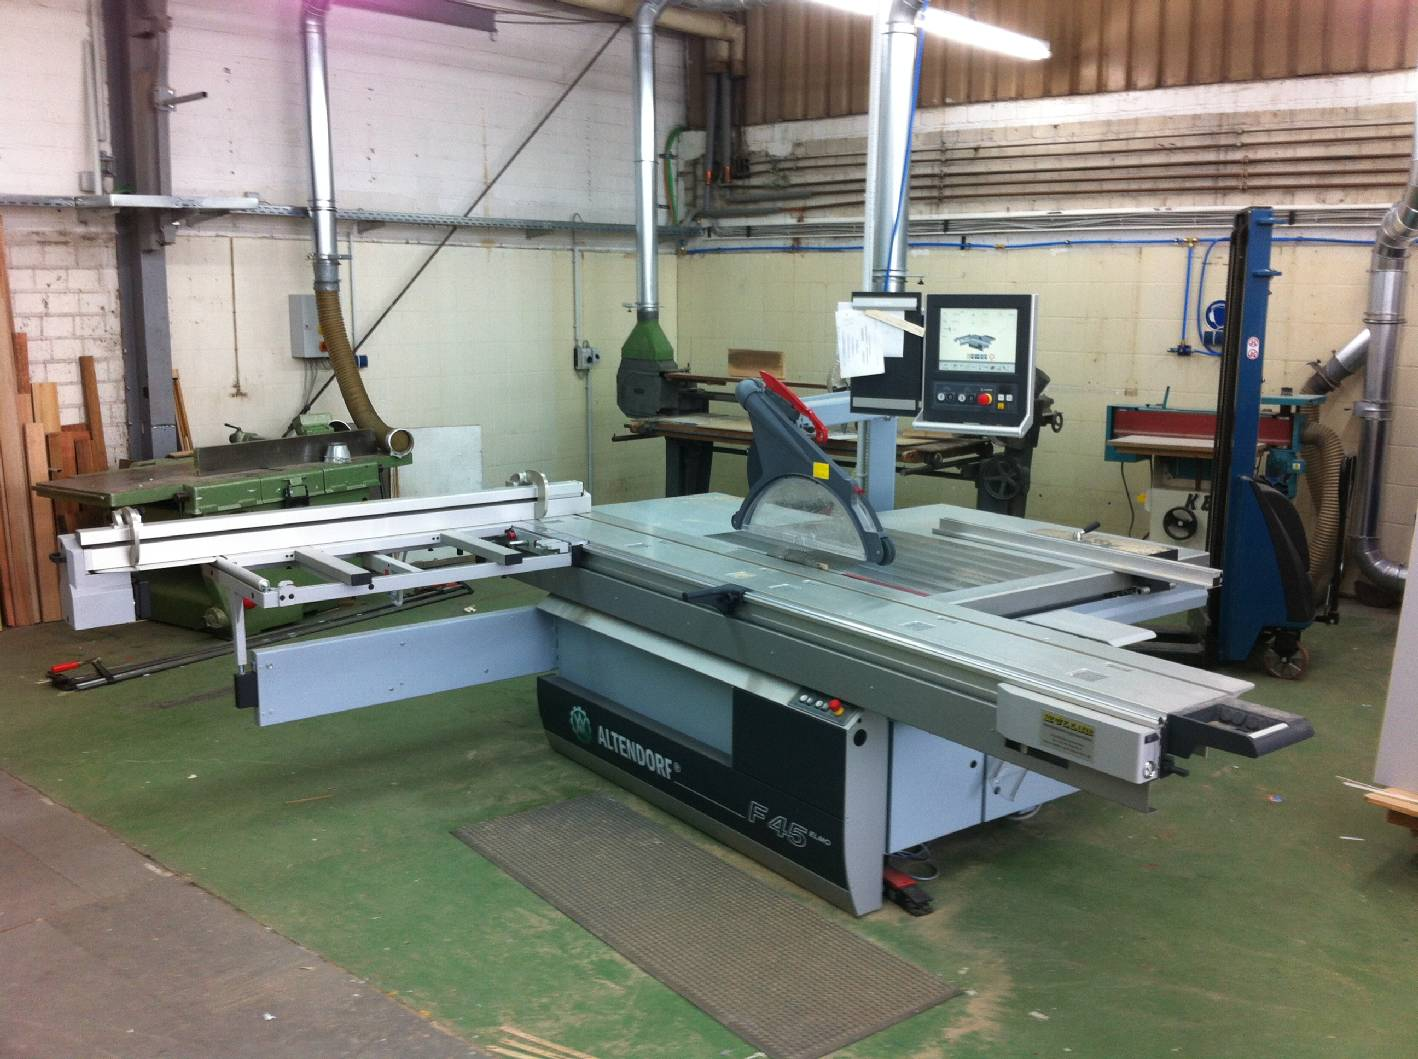 Altendorf F45 ELMO IV